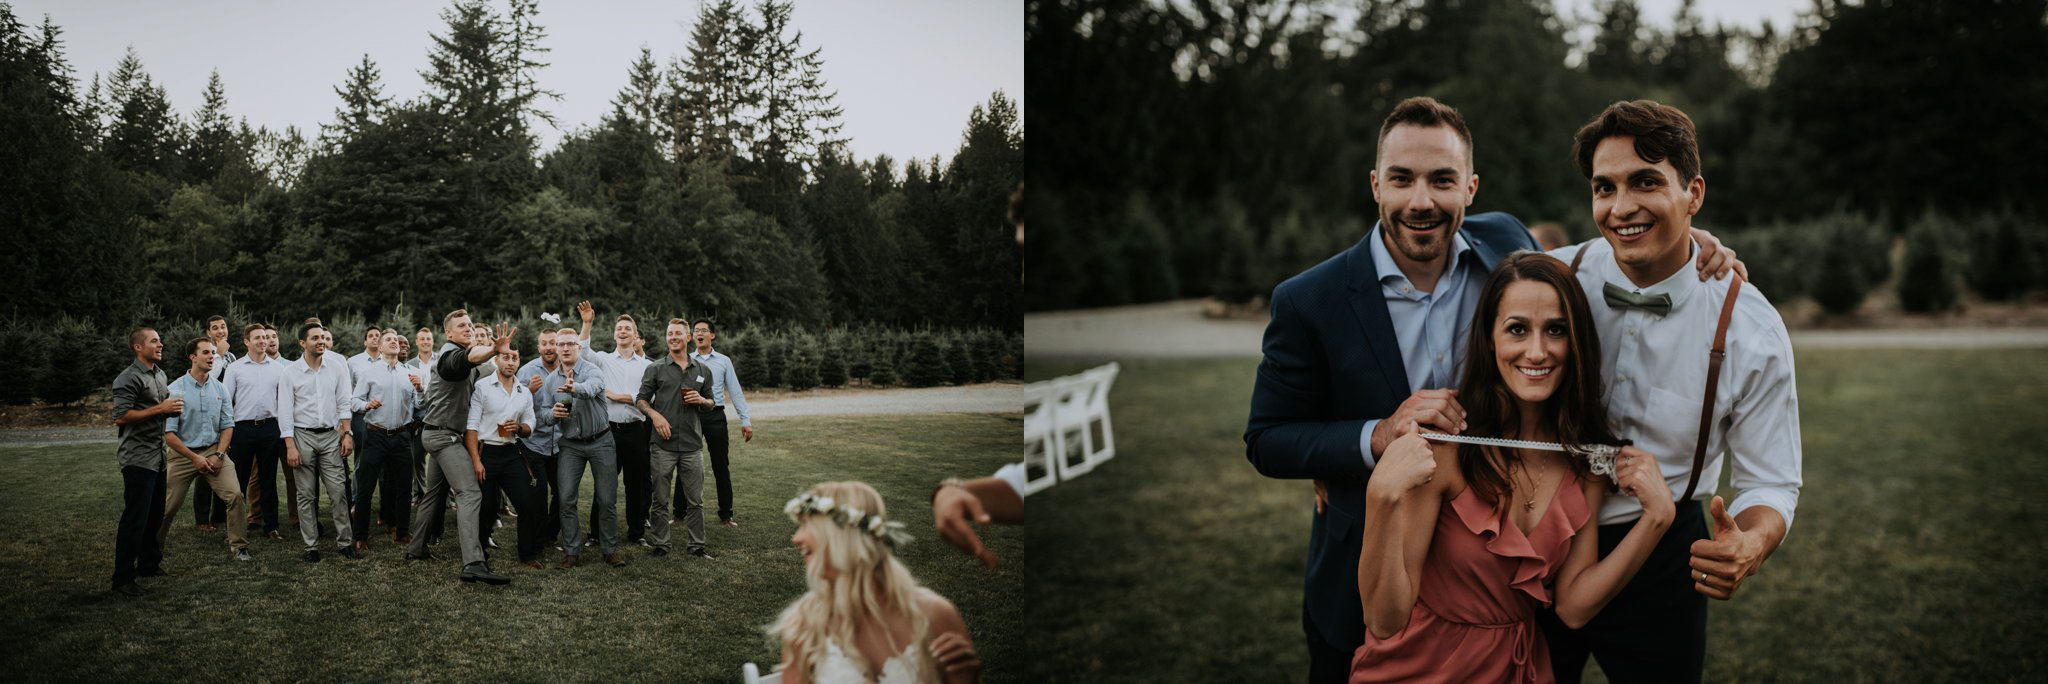 trinity-tree-farm-issaquah-washington-wedding-seattle-lifestyle-photographer-caitlyn-nikula-photography-131.jpg